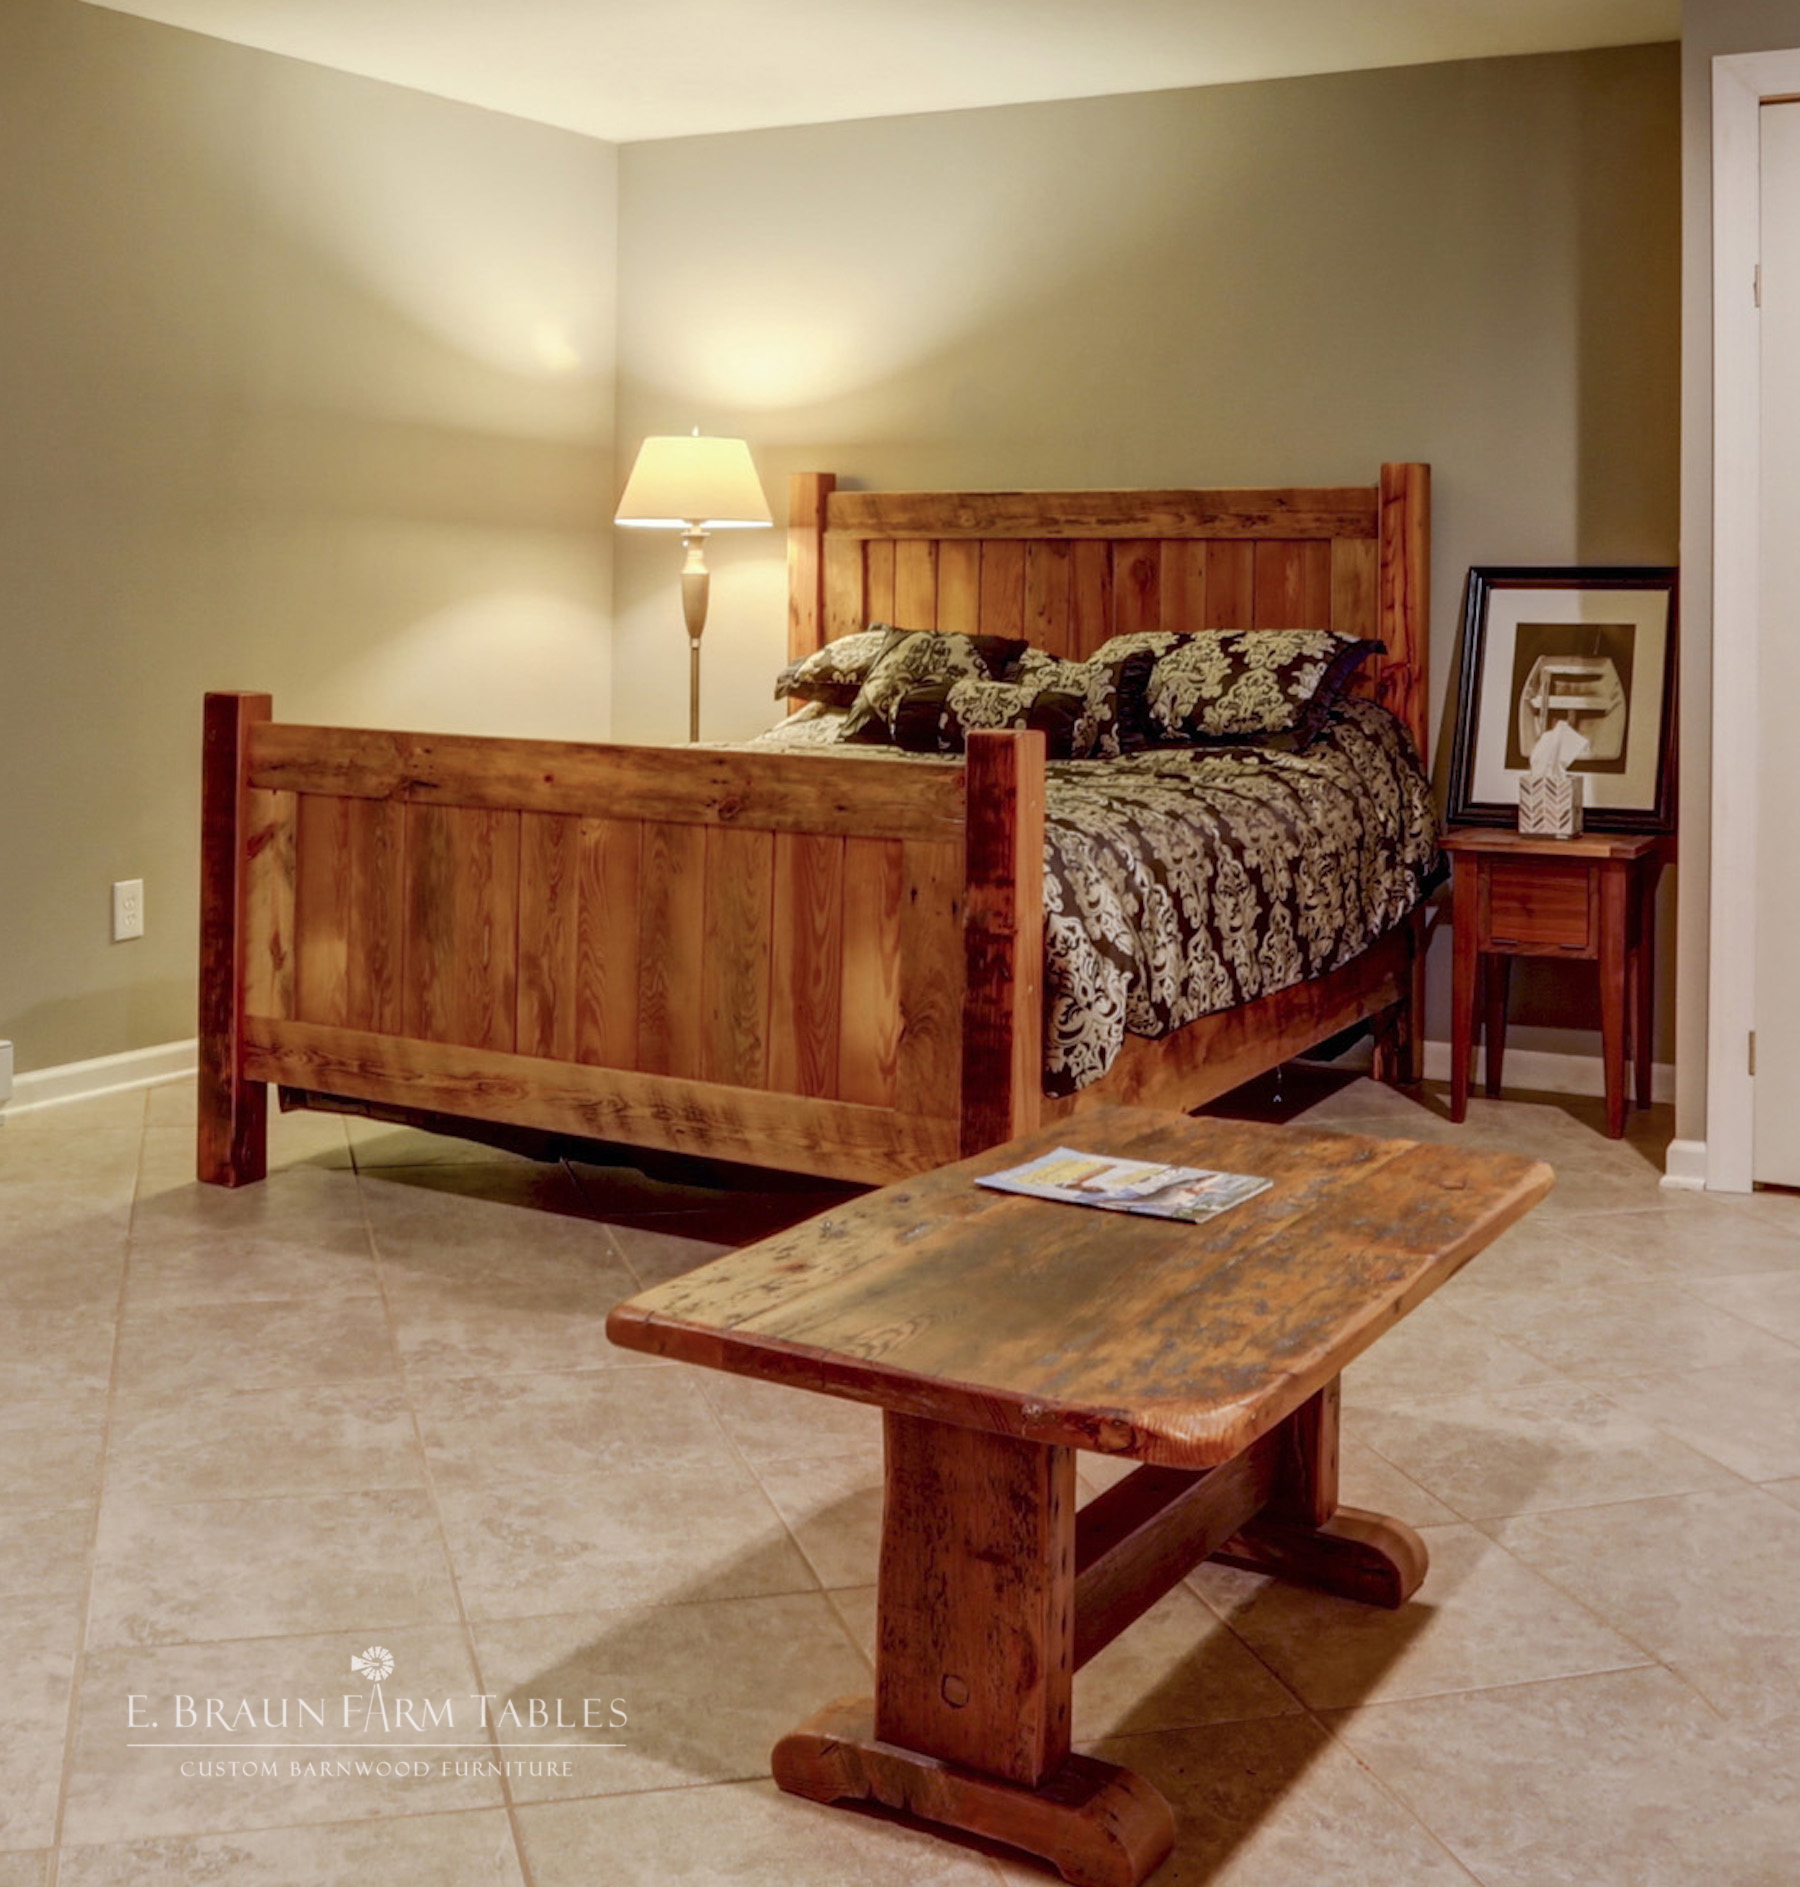 BR66 Panel Bed, Nightstand, Coffee Table